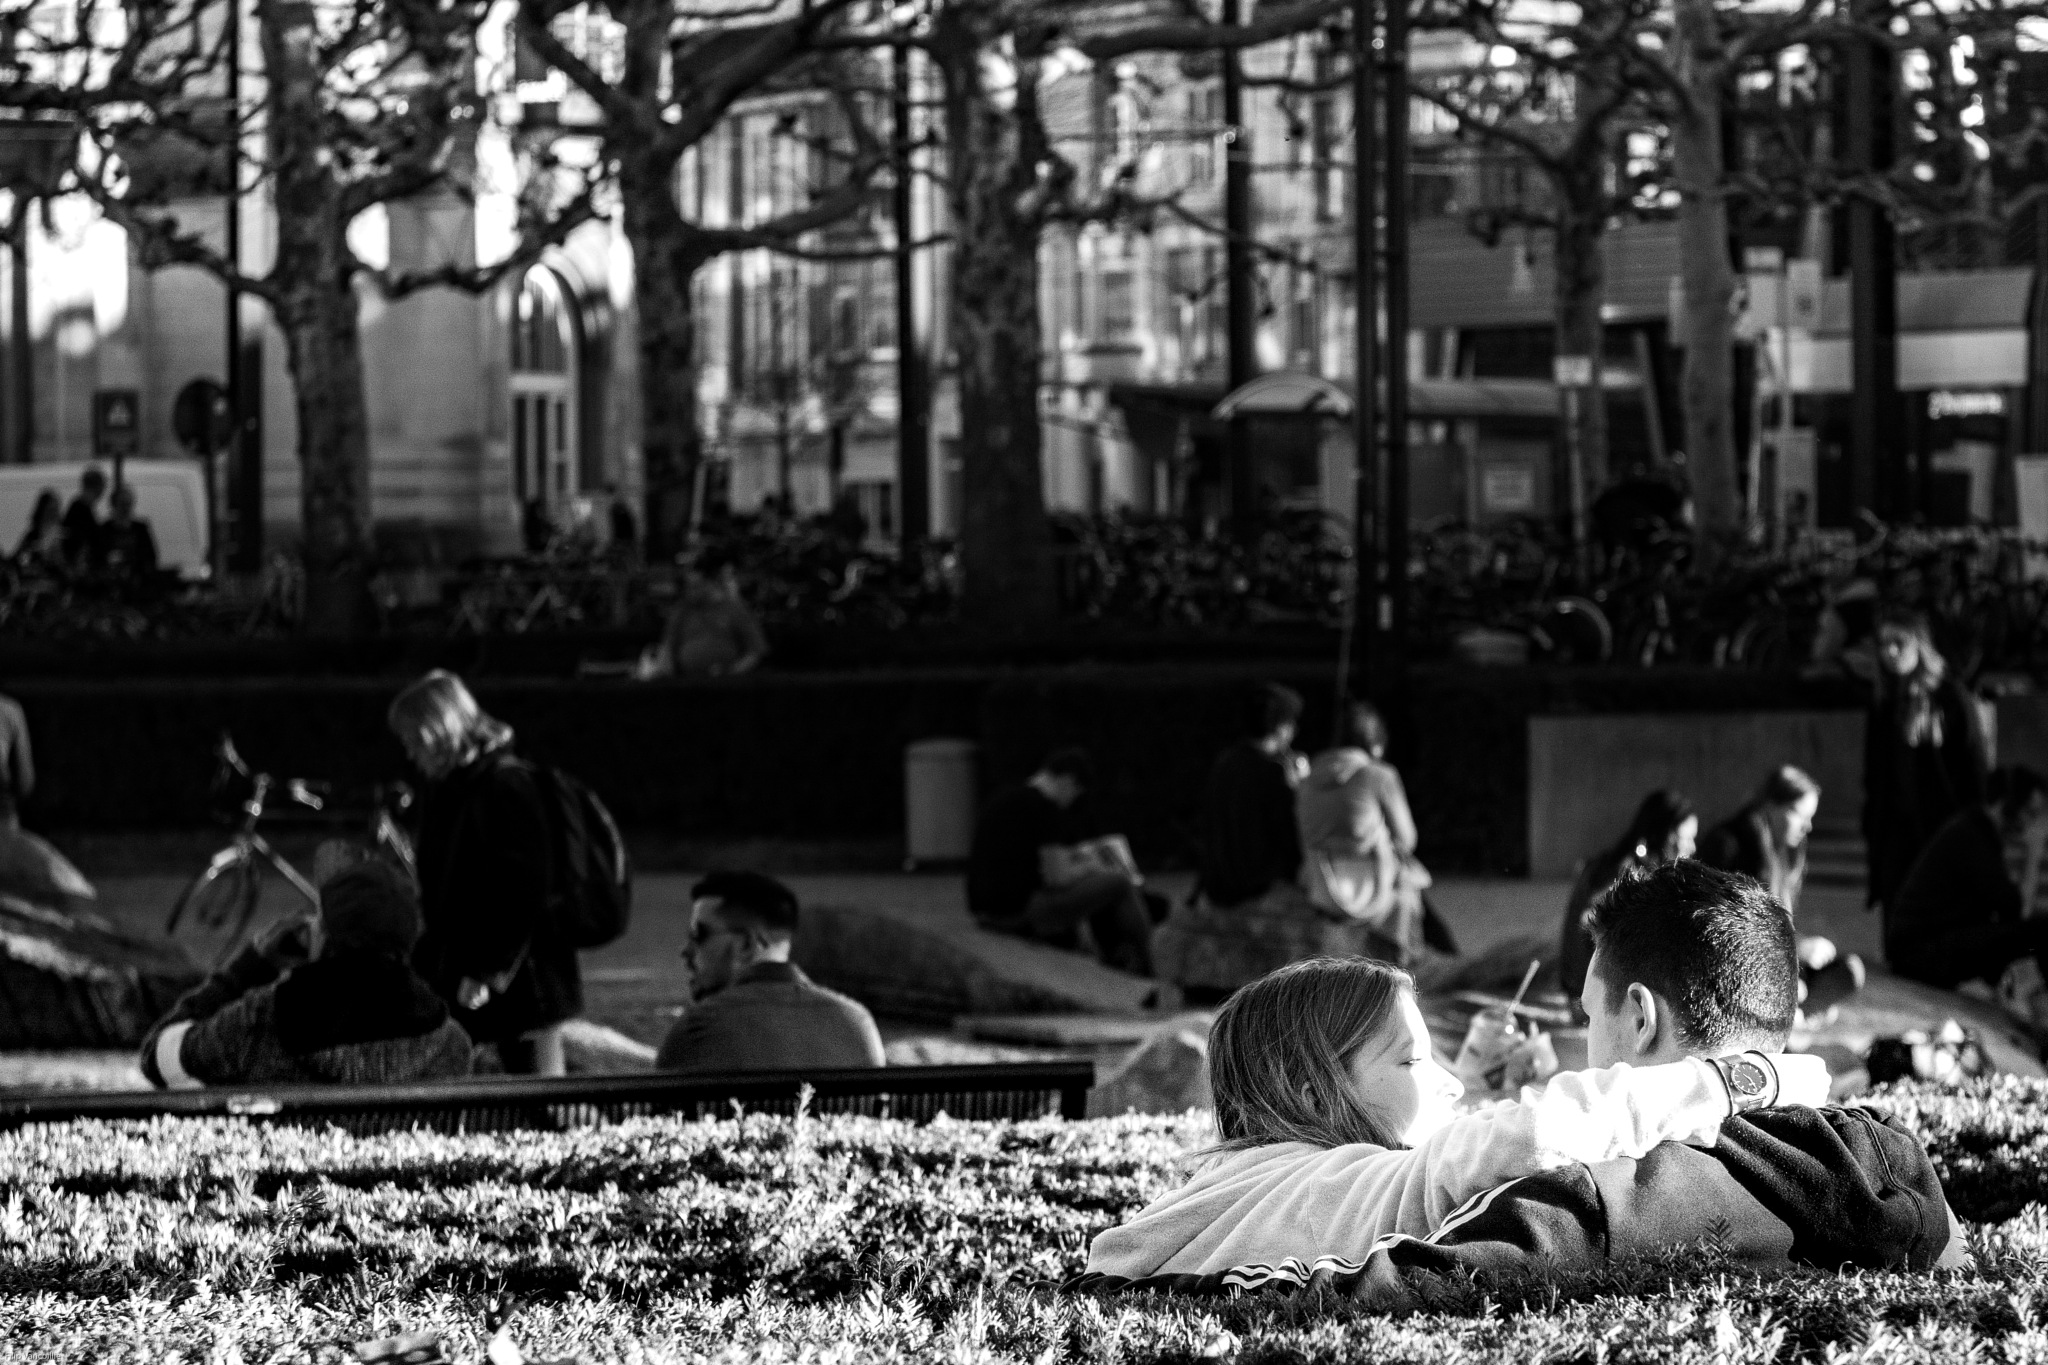 First warm sun in the park by vancoilliefilip